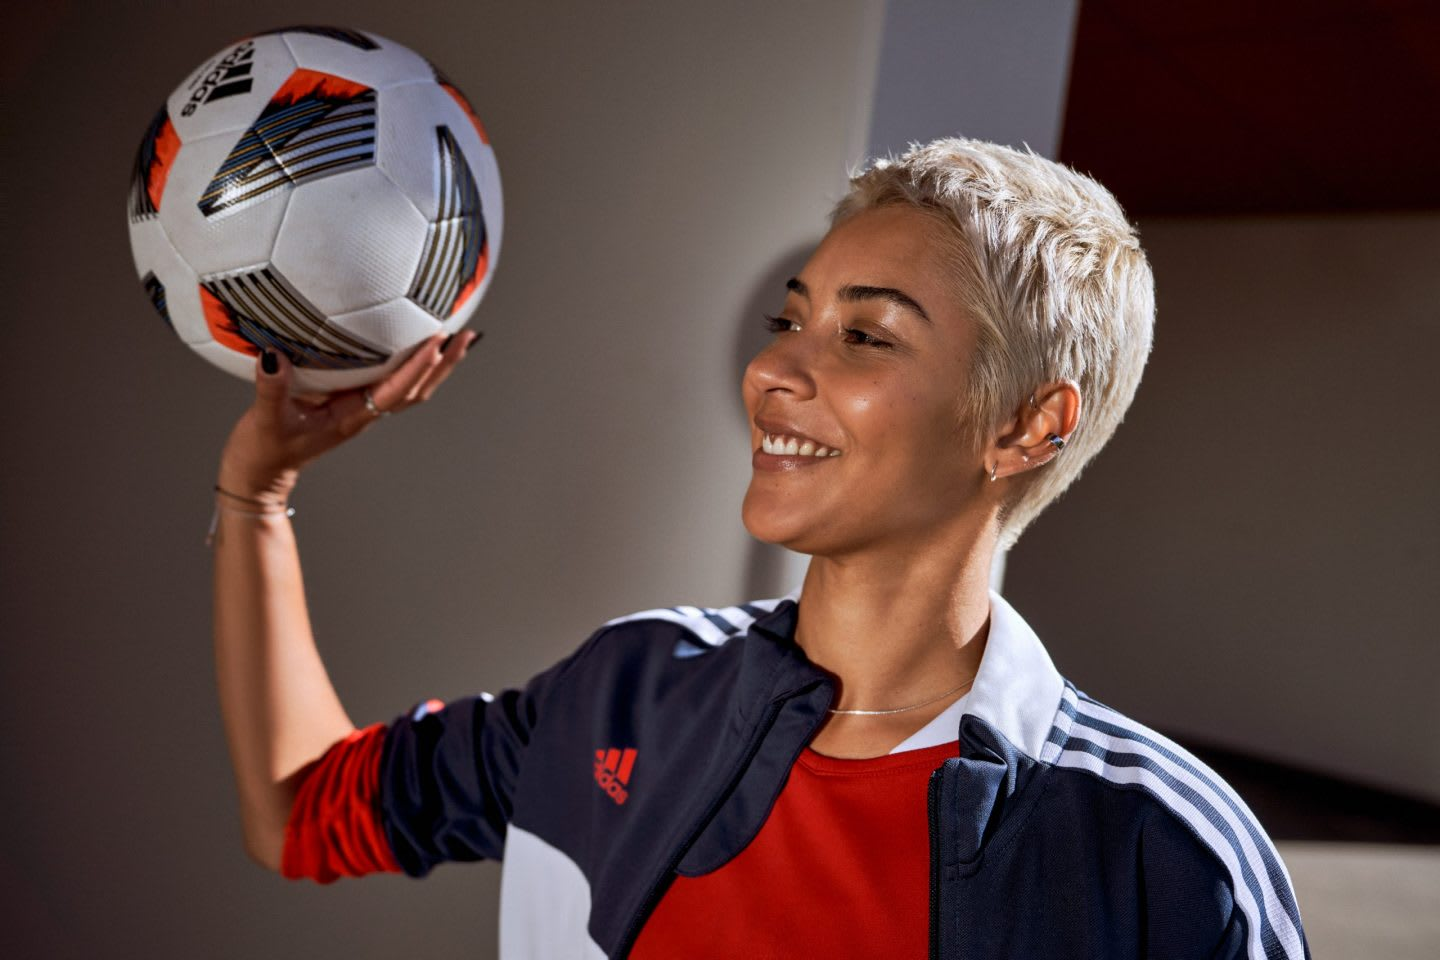 Woman with blonde short hair wearing sports outfit holding football ball in hand while smiling, adidas, football, women, inclusion